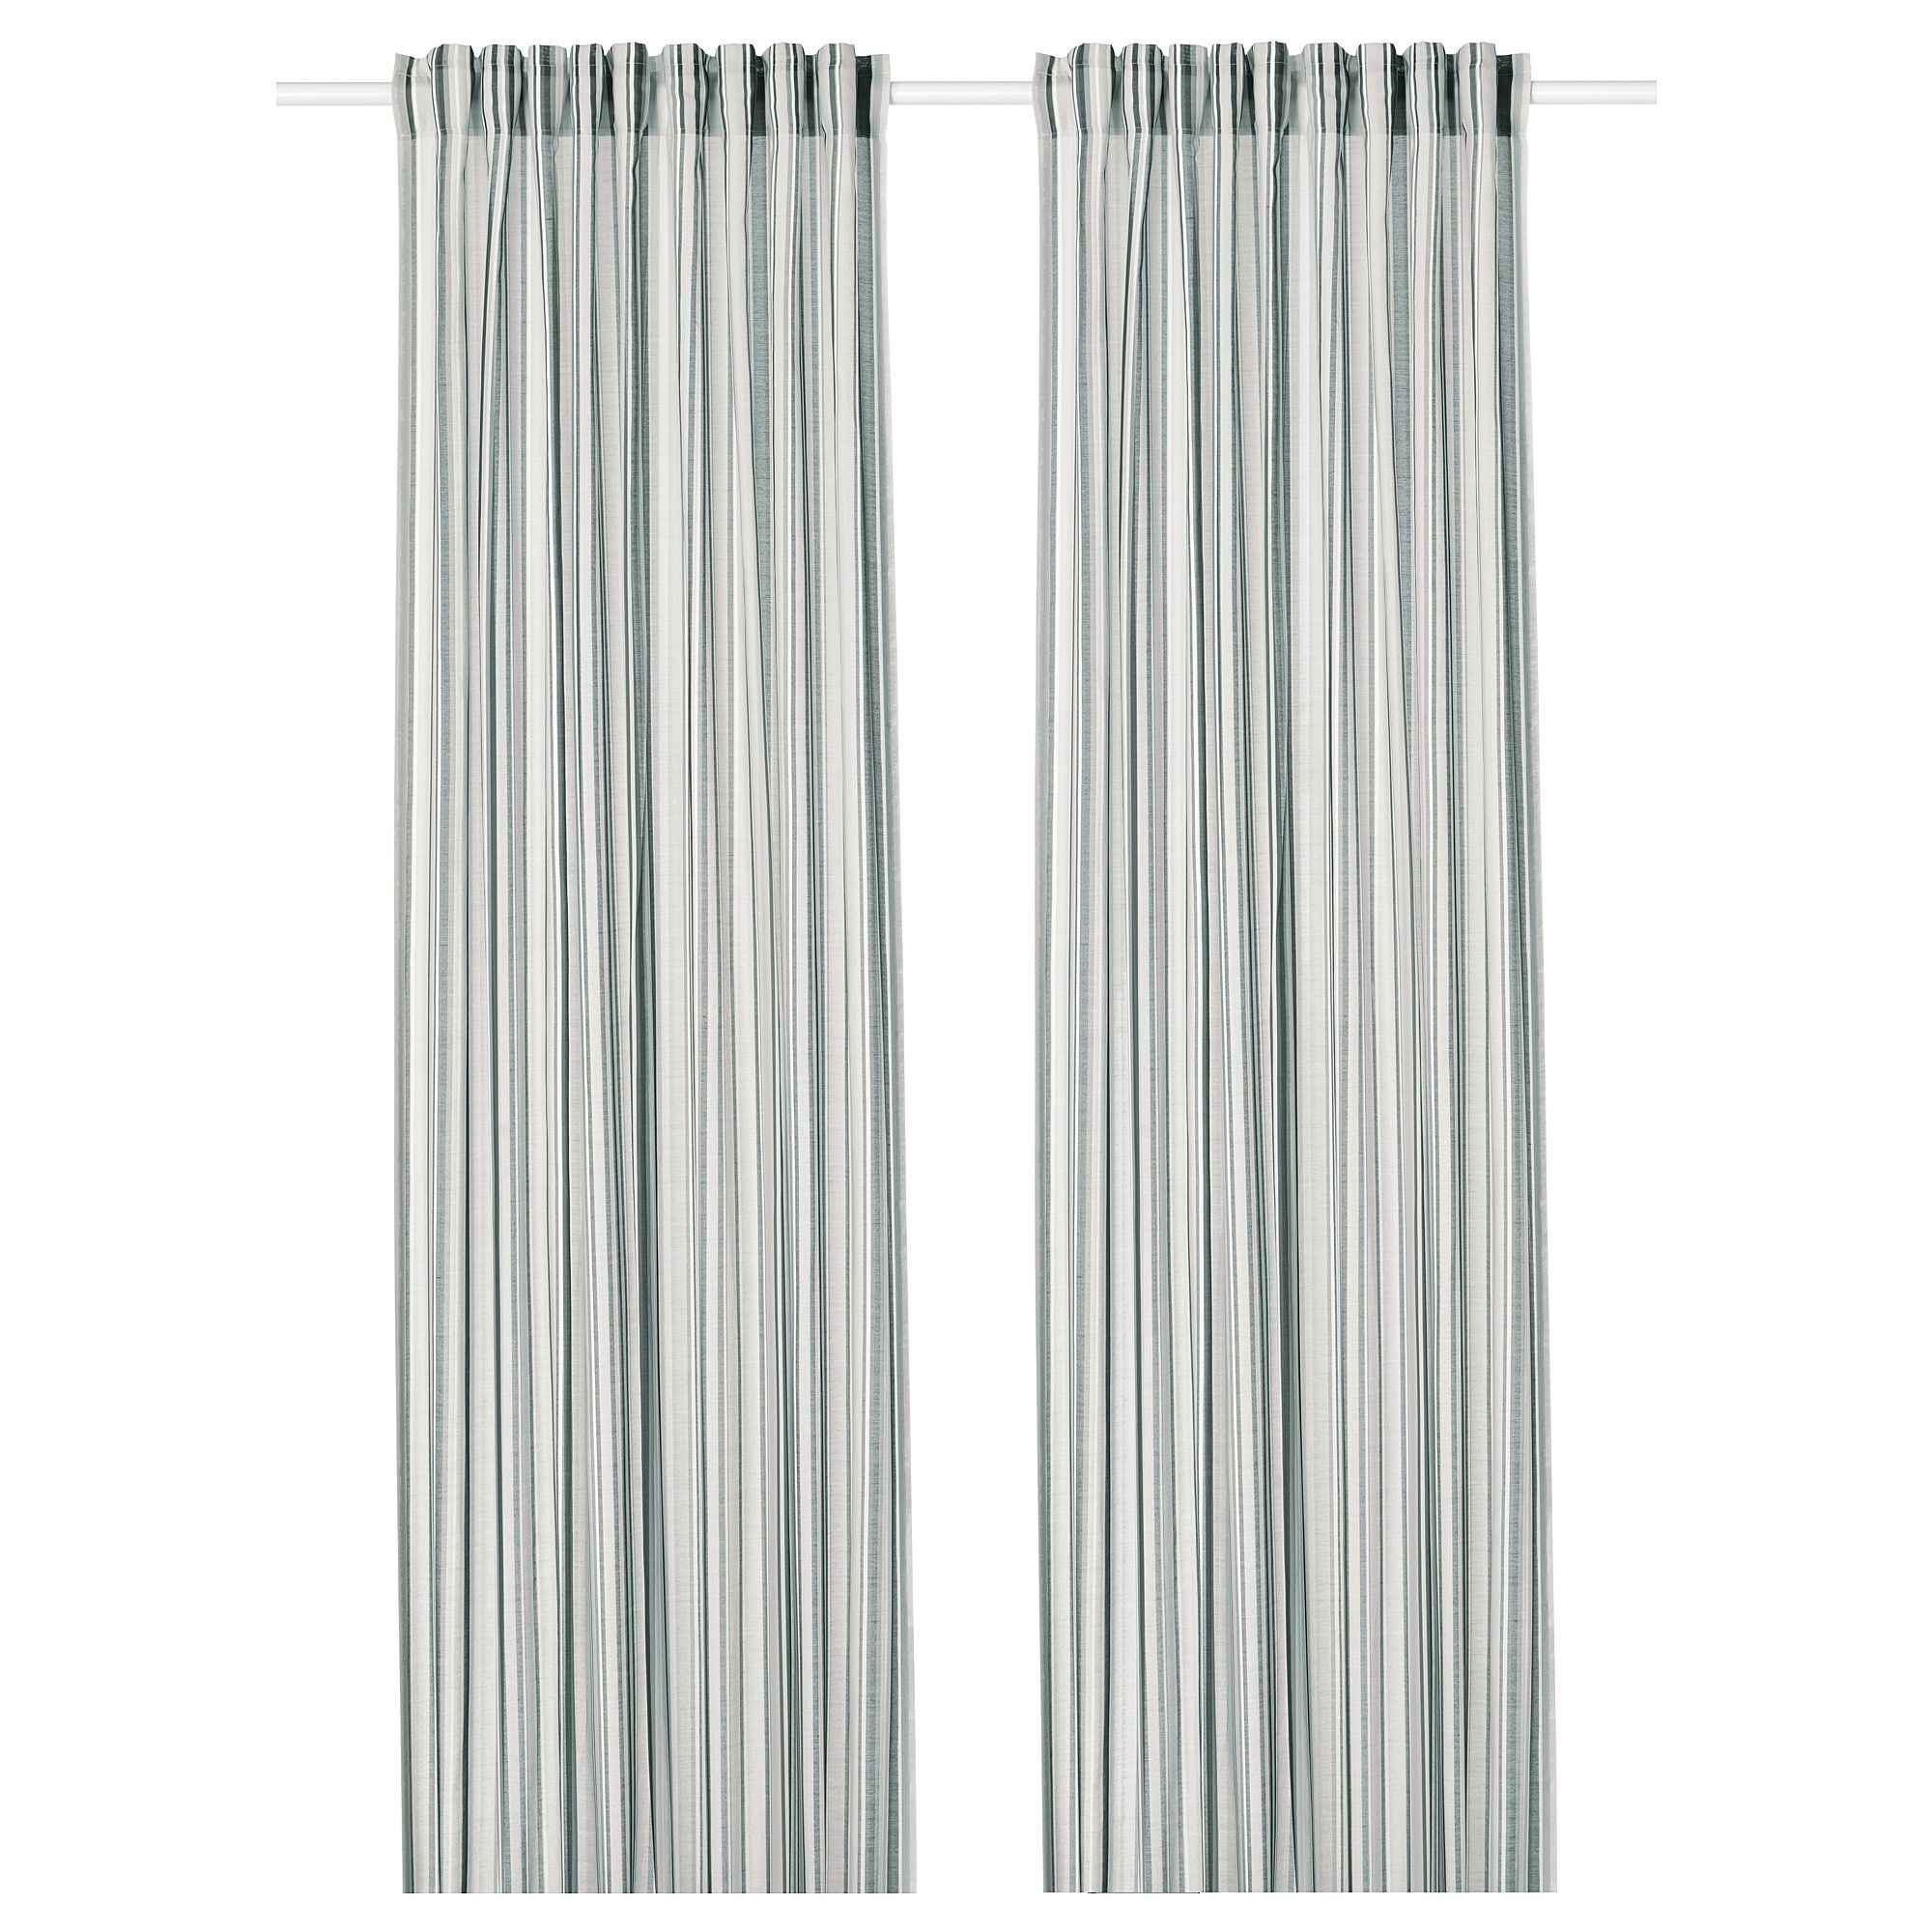 Ikea Praktklocka Gray Stripe Curtains 1 Pair Curtains Lace